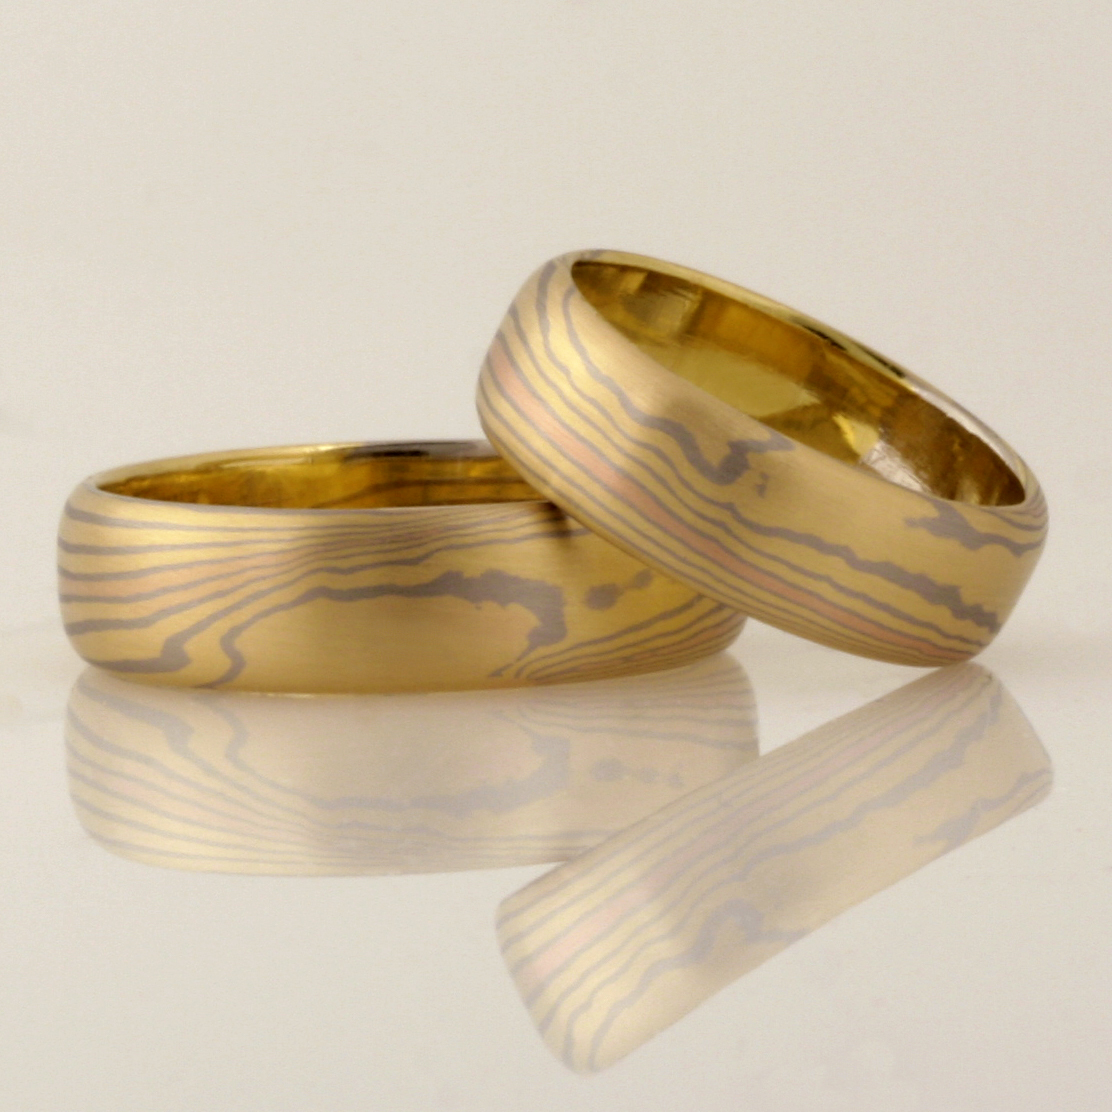 "R063 Handmade & Designed by Robert Paul. 18ct yellow, white and rose gold ladies 1/2 round Mokume Gane wedding ring. Size ""Q"" $3000"